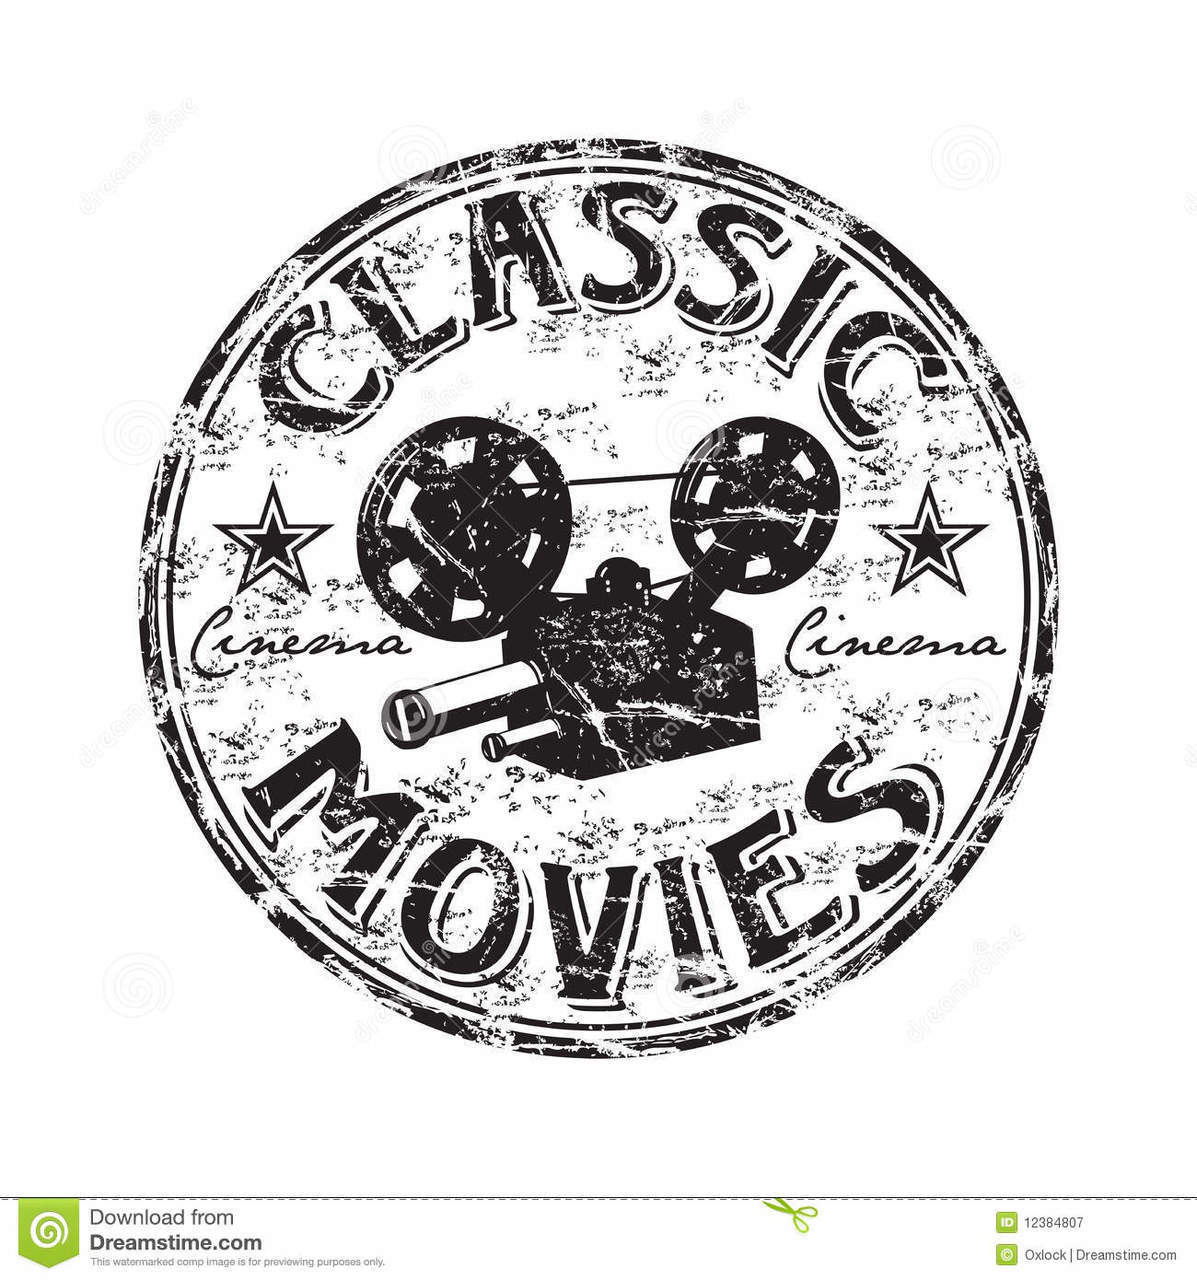 article, Breakfast at Tiffanys, and classic image